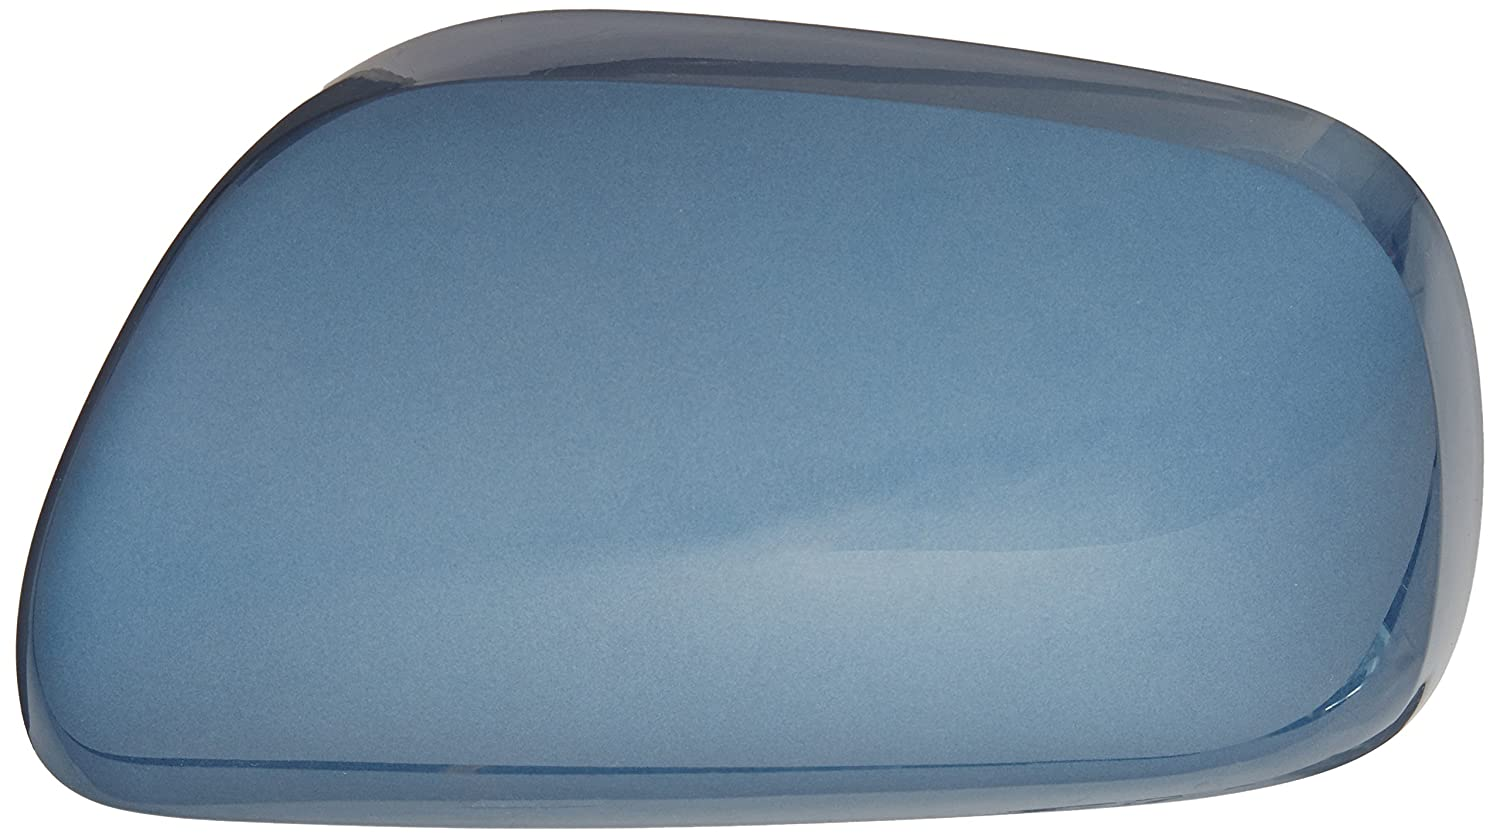 Genuine Toyota 87945-68010-J3 Outer Mirror Cover